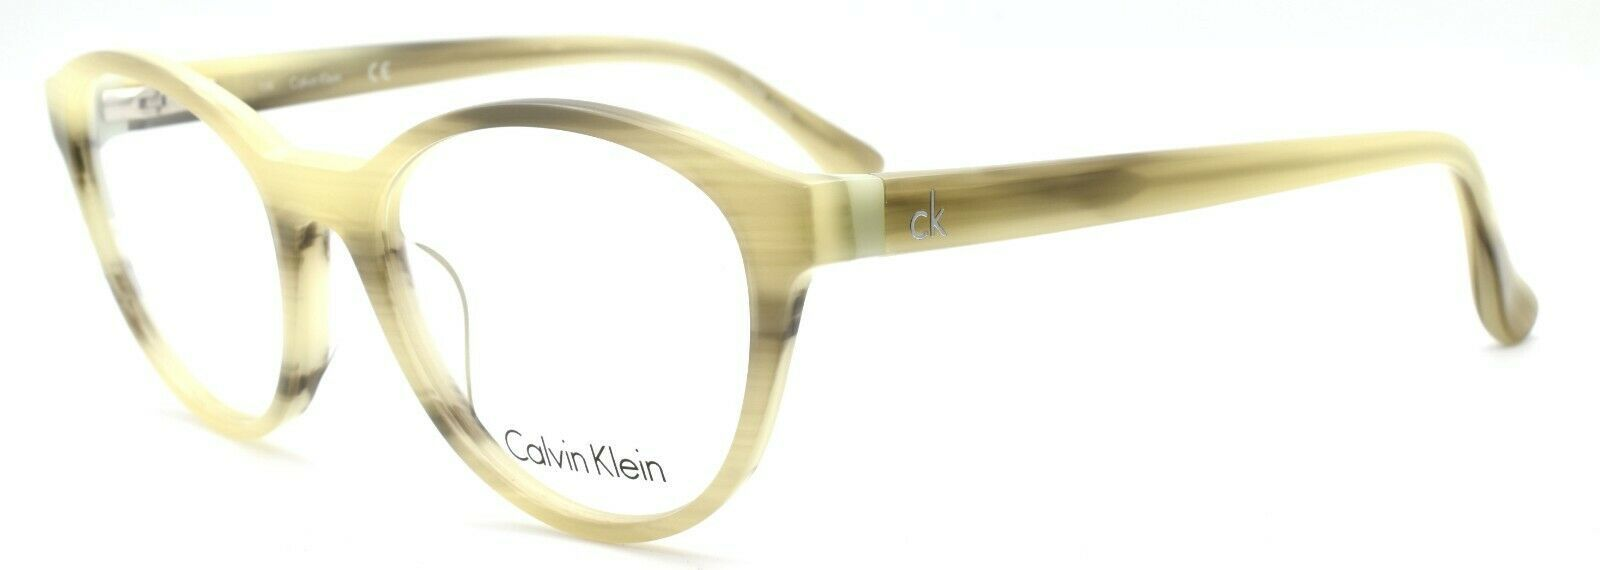 Calvin Klein CK5881 418 Women's Eyeglasses Frames Cat-eye 51-18-135 Mint